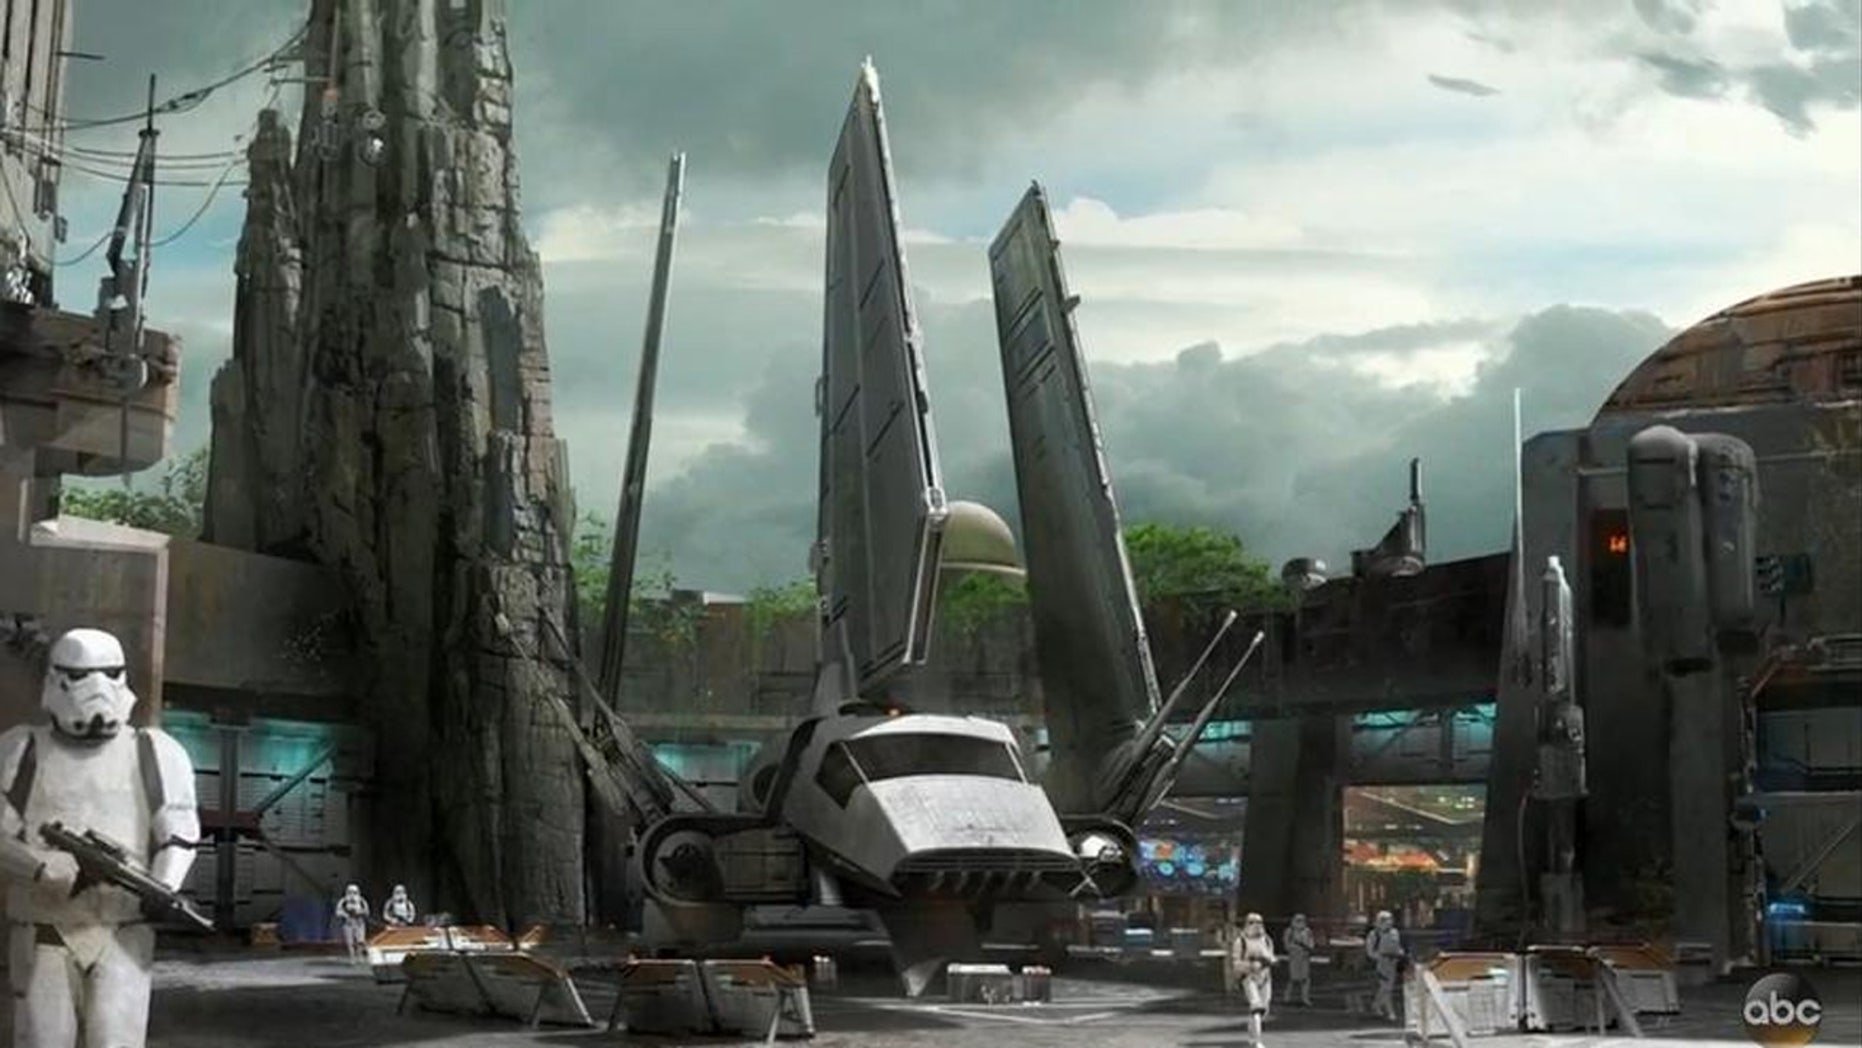 The Star Wars Experience will be located at Disneyland in California and at Disney's Hollywood studios at Walt Disney World in Florida.